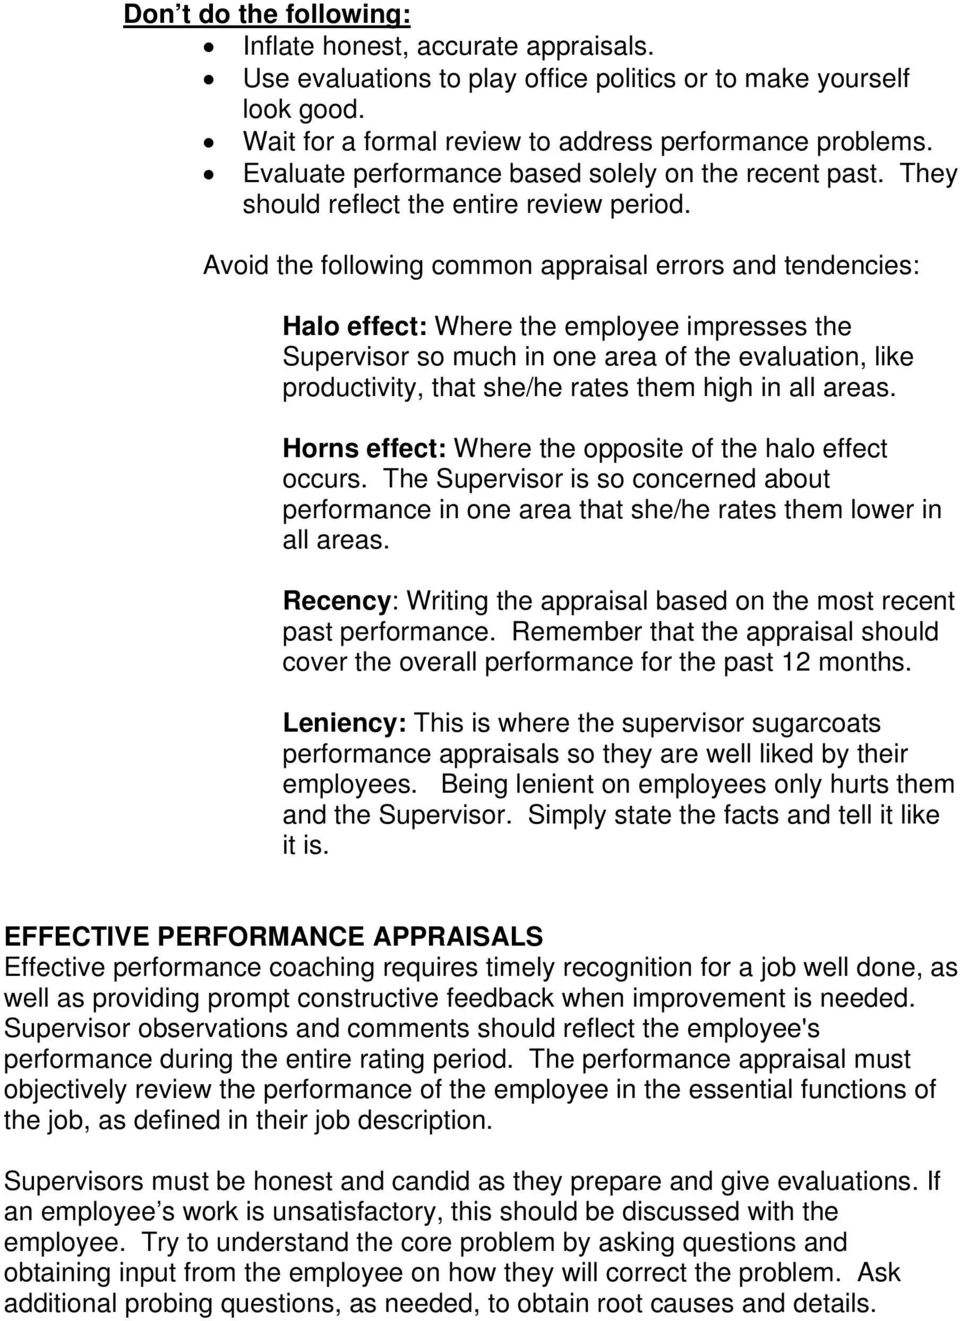 Avoid the following common appraisal errors and tendencies: Halo effect: Where the employee impresses the Supervisor so much in one area of the evaluation, like productivity, that she/he rates them